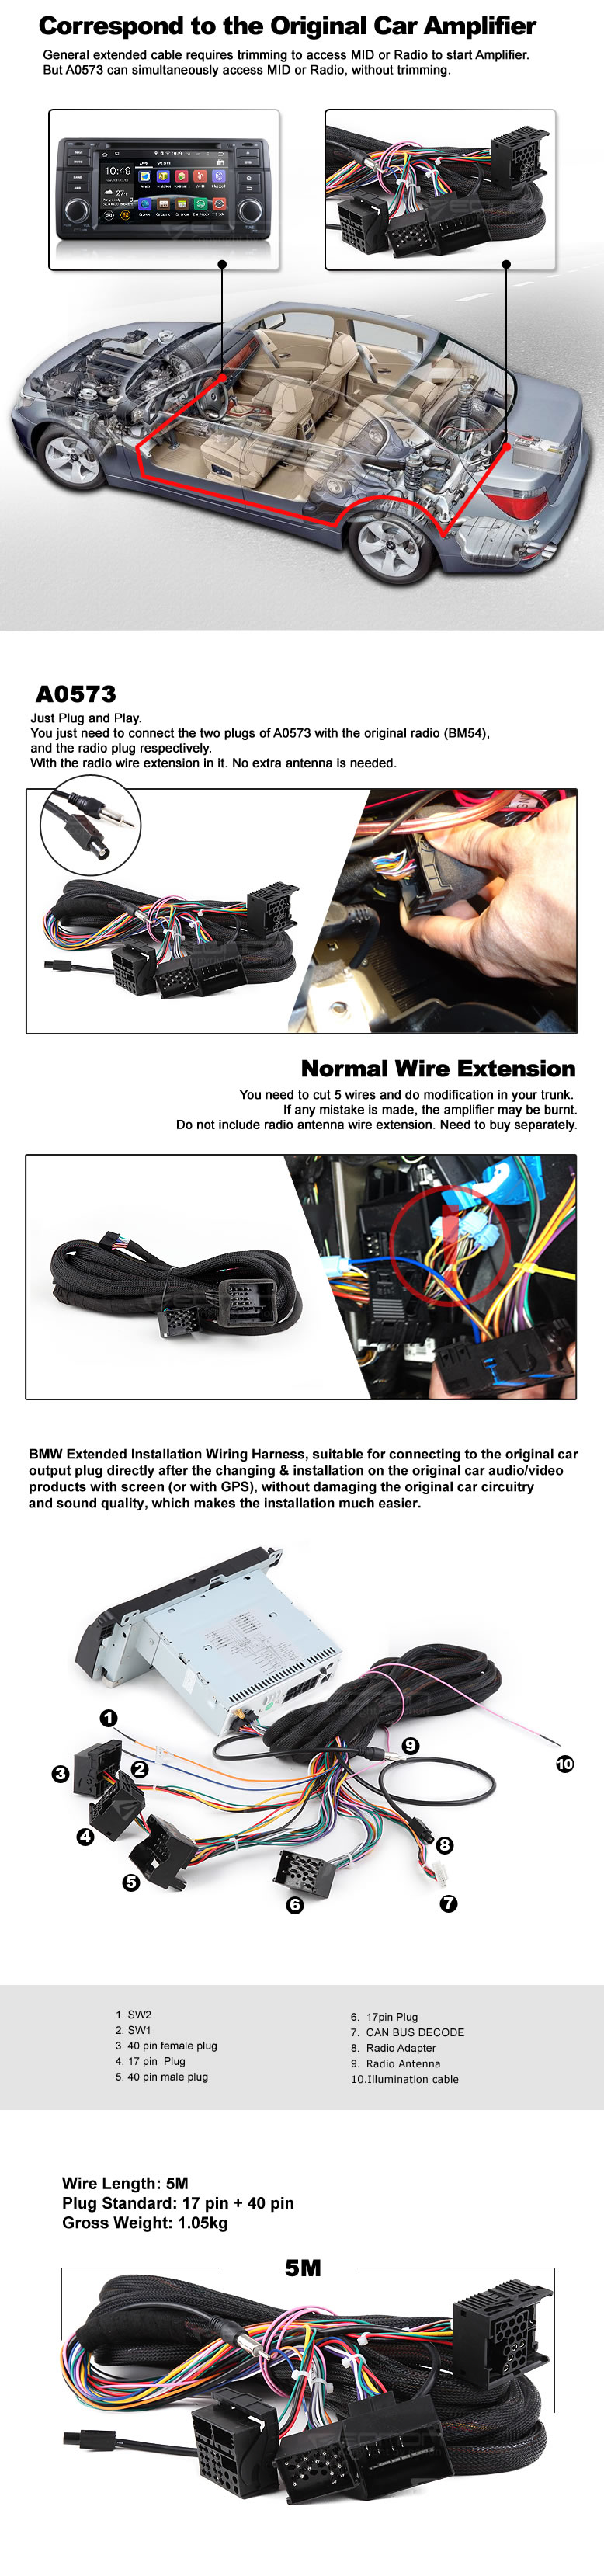 a specific bmw installation wiring harness shipping